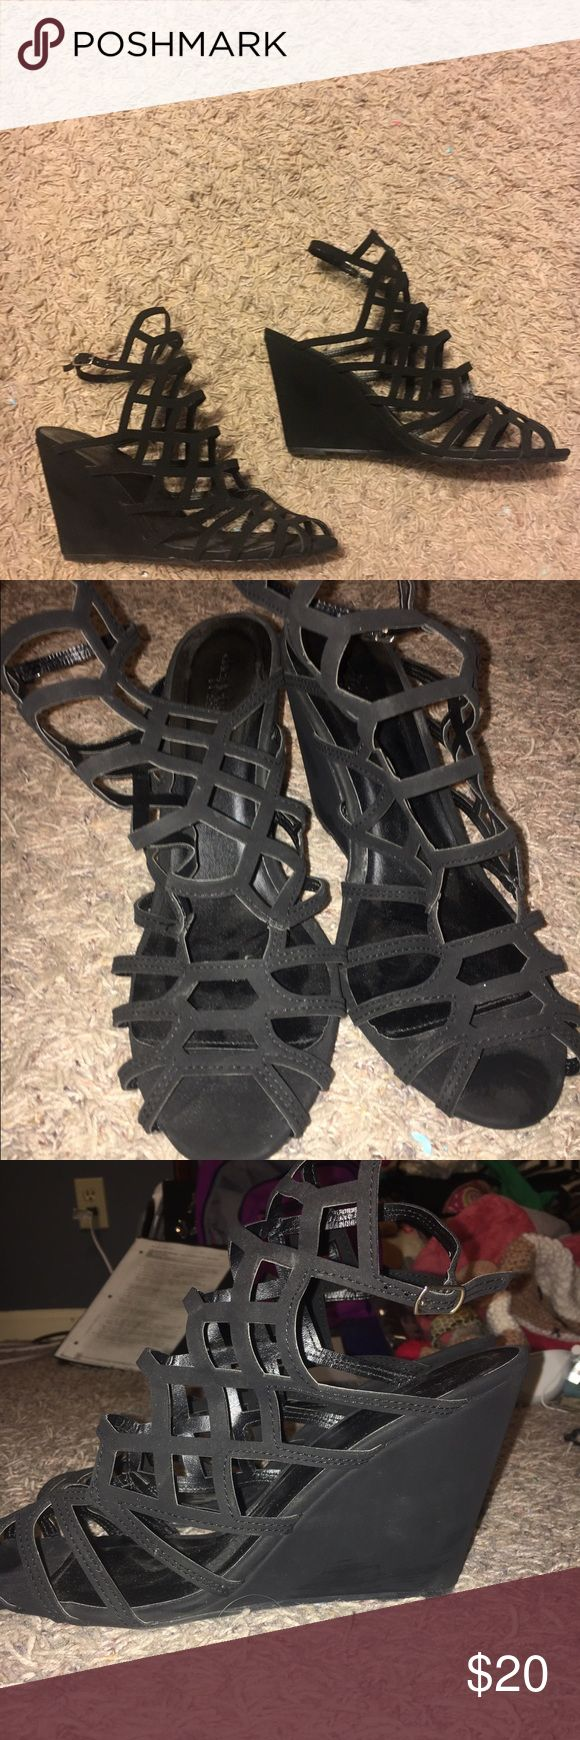 Strappy Wedges from Charlotte Russe (black) These black strappy wedges are so comfy and stylish! They were worn for about an hour at a band banquet! More pictures can be provided upon request. Happy posting ✨ Charlotte Russe Shoes Wedges